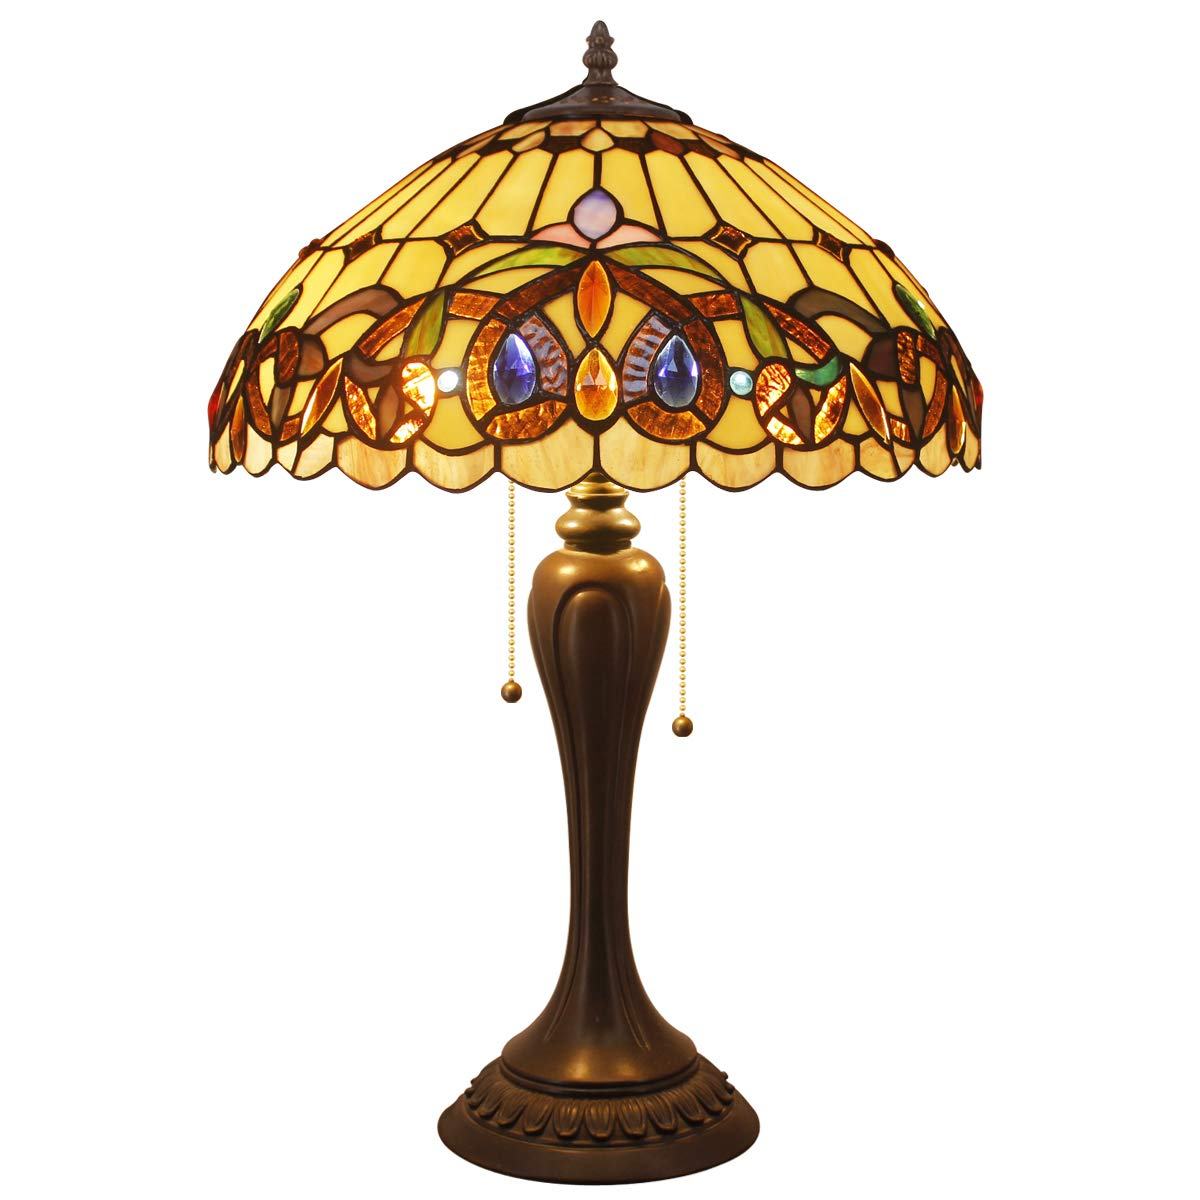 Tiffany Style Table Desk Beside Lamp 24 Inch Tall Stained Glass Serenity Victorian Lamps Shade 2 Light Antique Base for Living Room Bedroom Set W16 inch S021 WERFACTORY